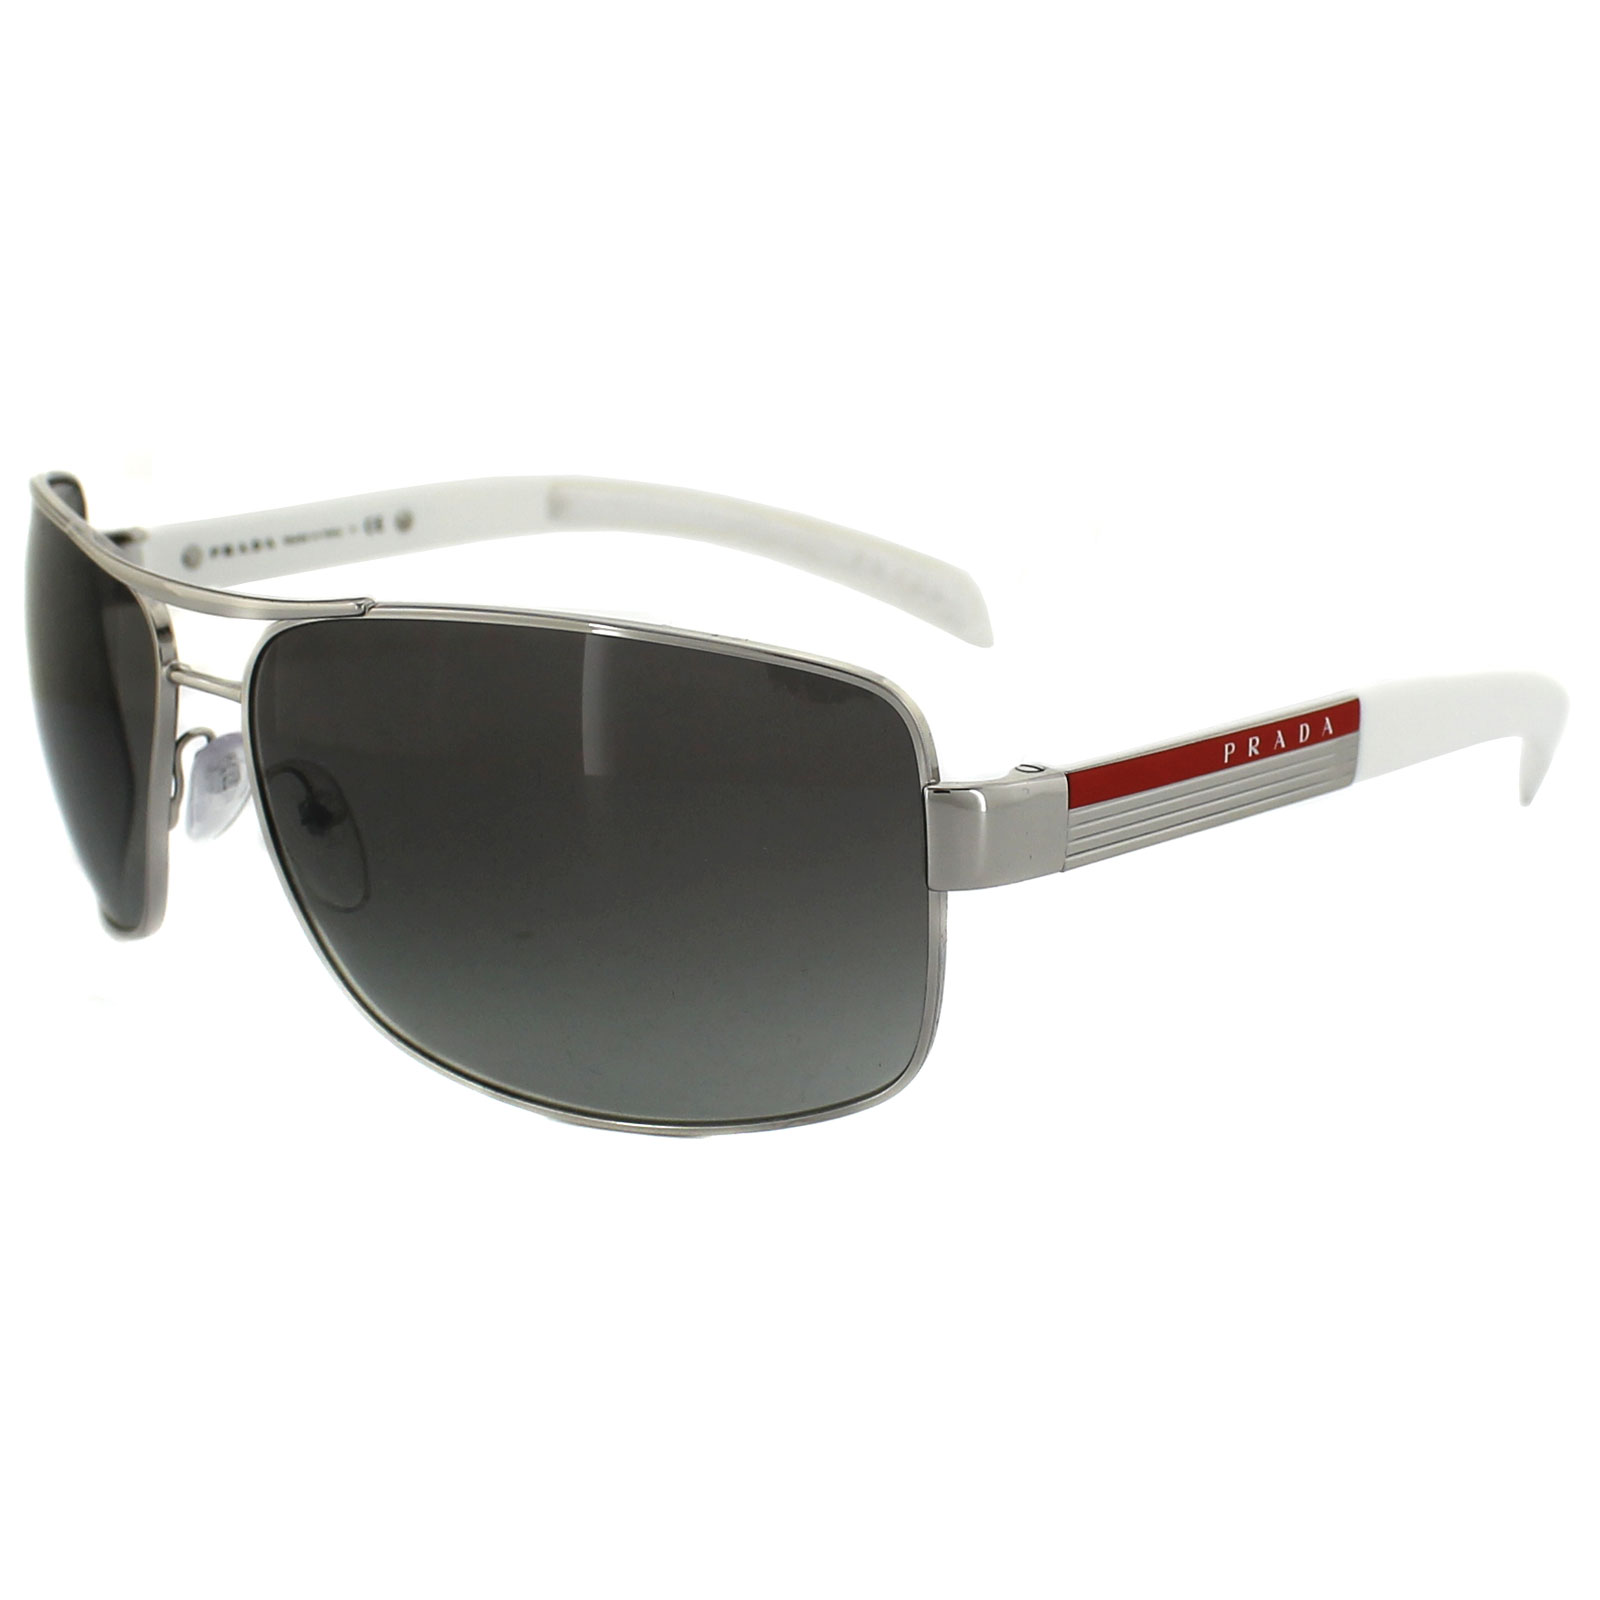 prada wristlet price - Cheap Prada Sport 54IS Sunglasses - Discounted Sunglasses